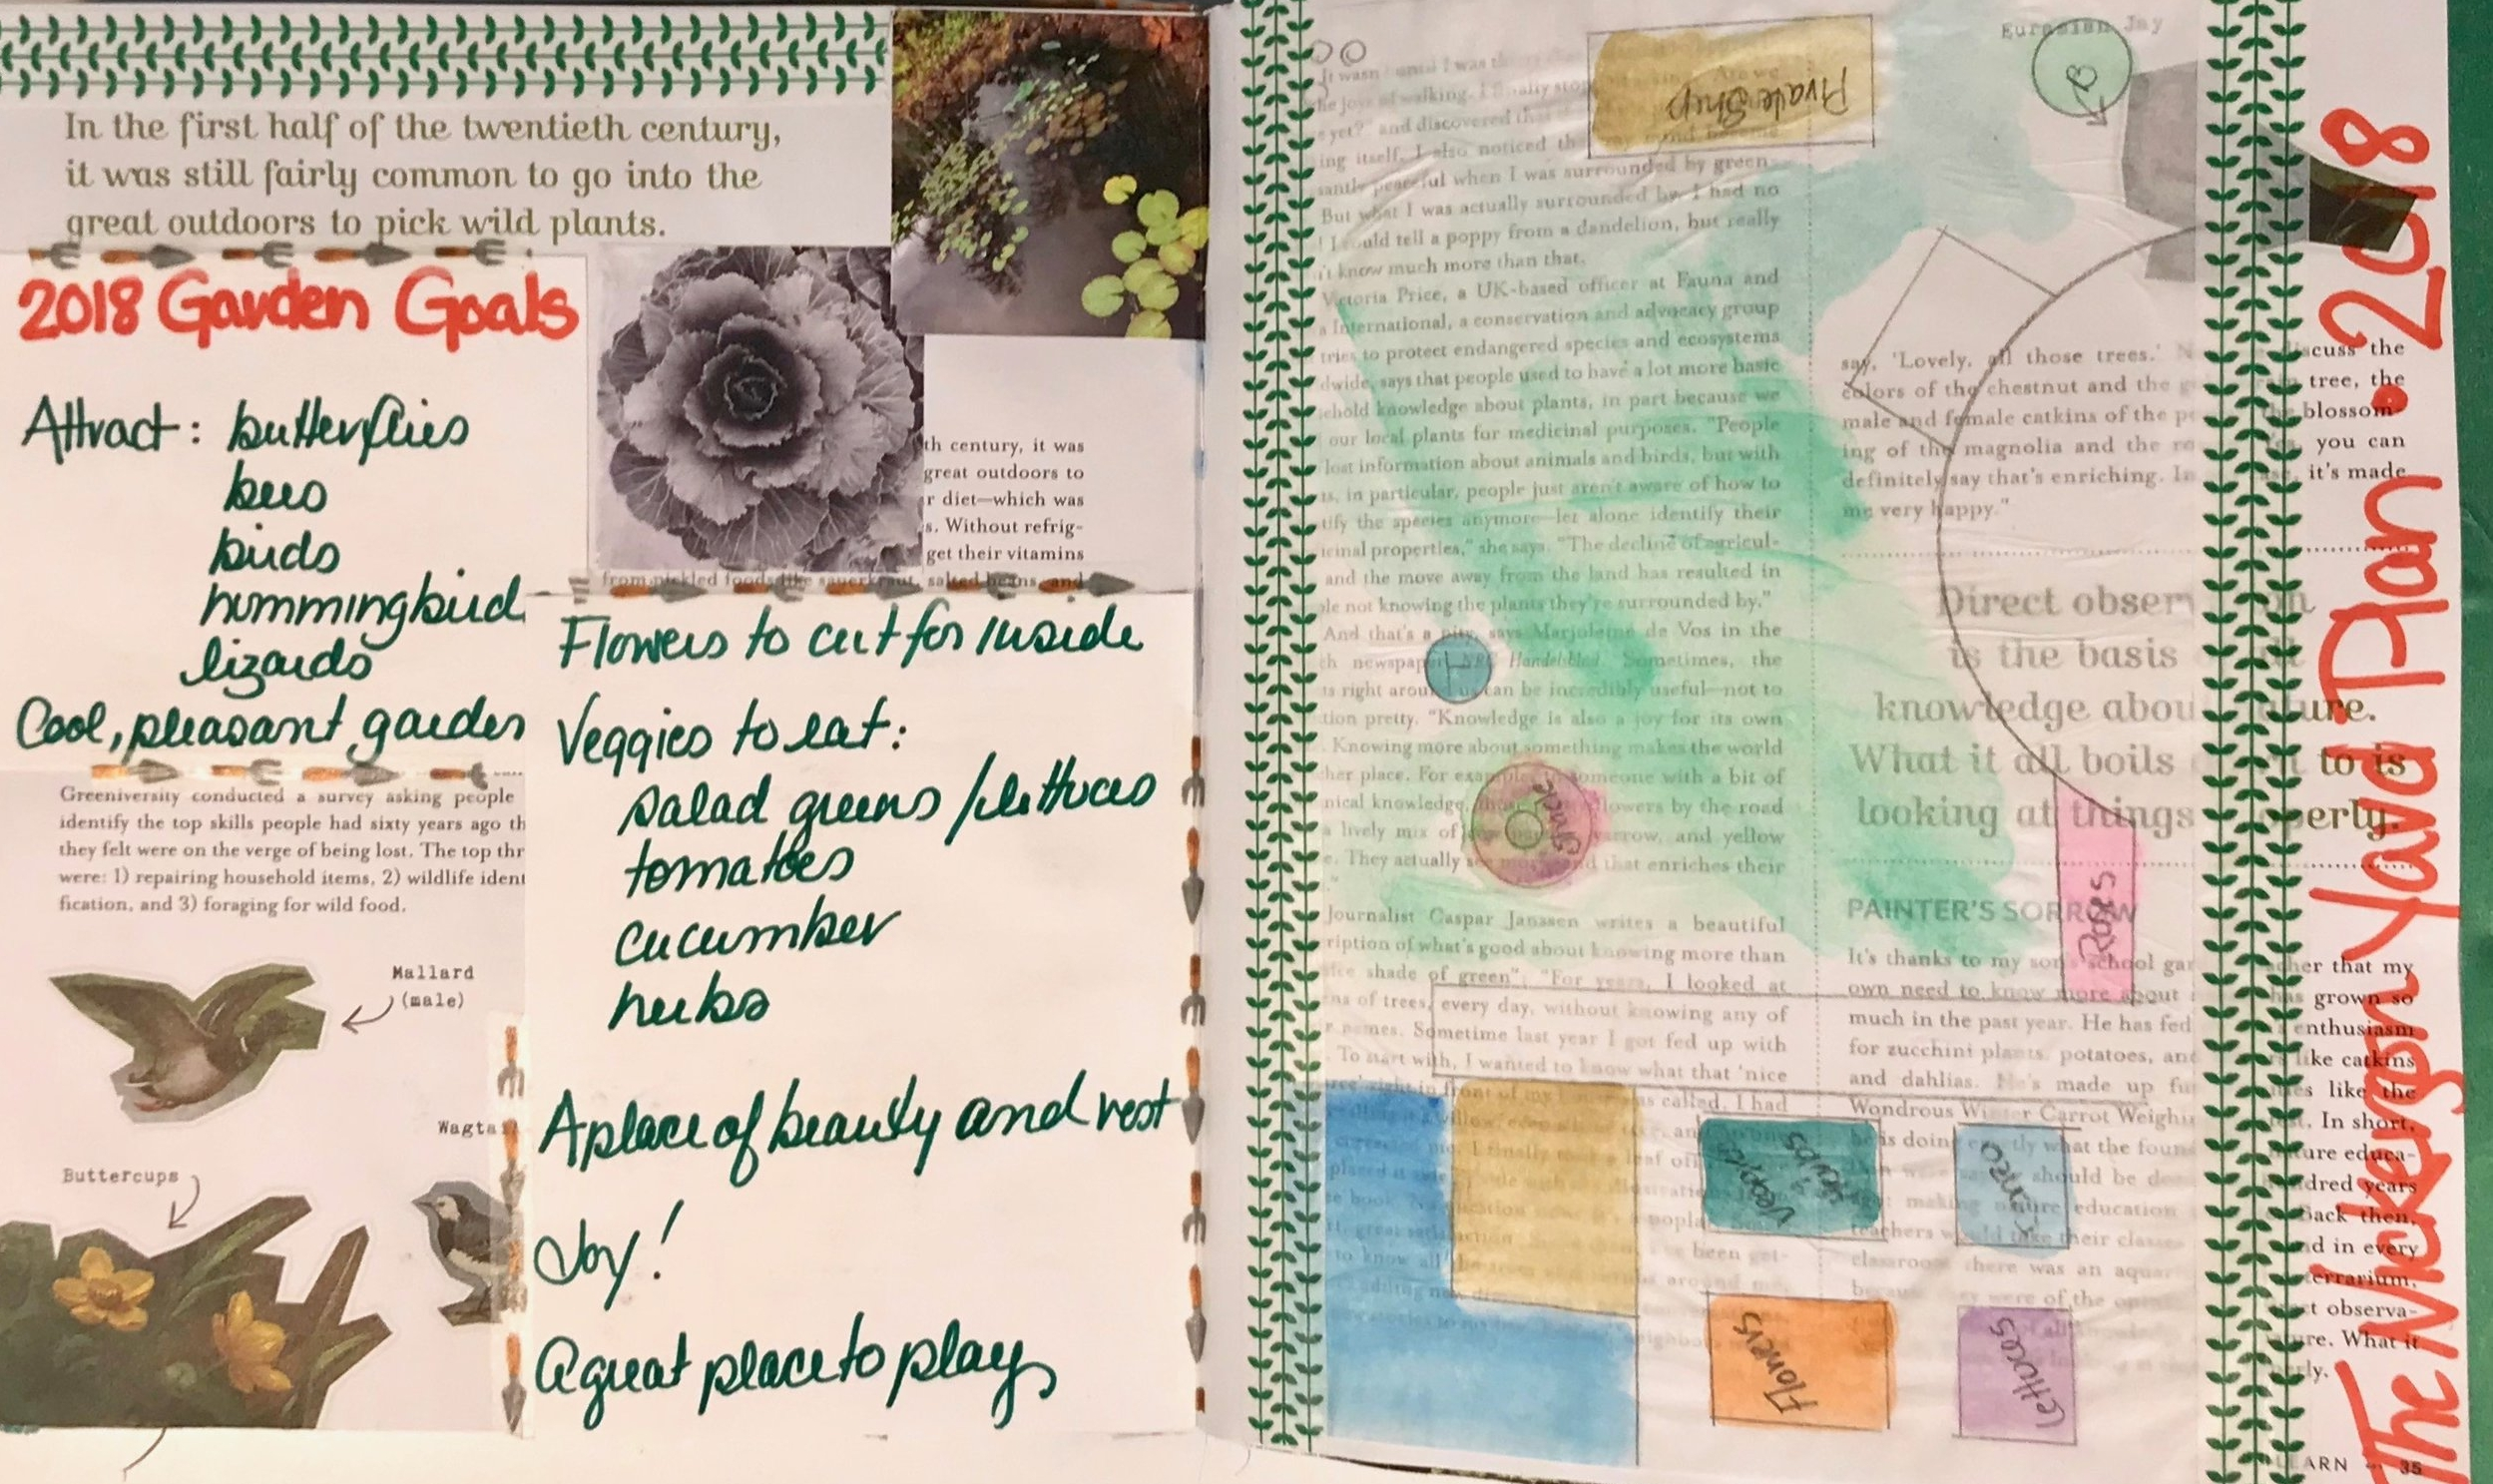 Even garden planning takes creativity, and in the section of the book about connecting with nature, I set out our 2018 gardening goals.